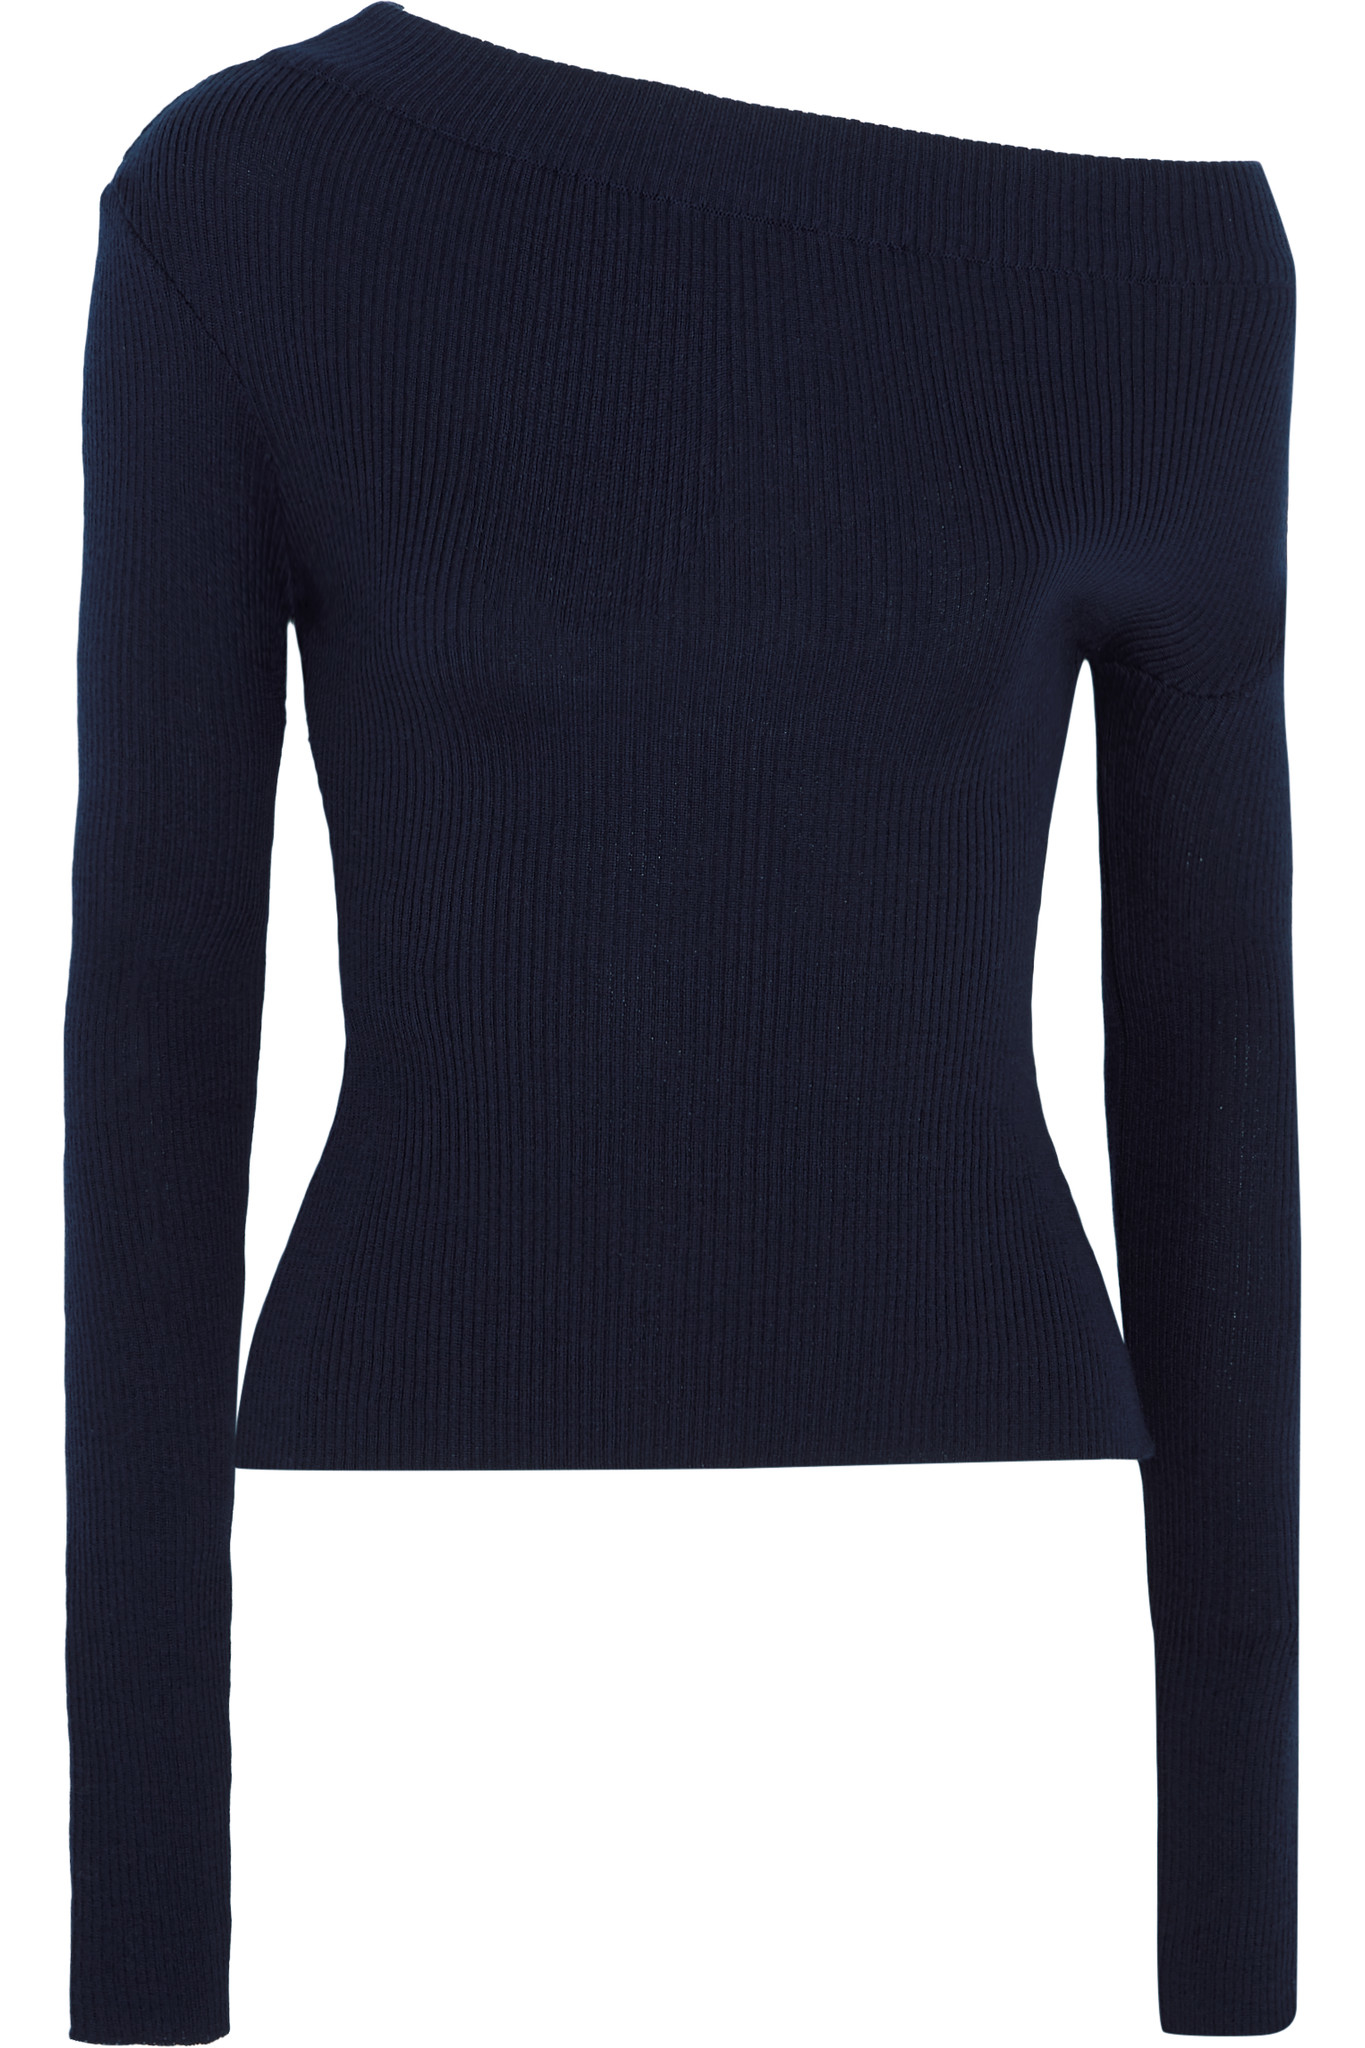 Jacquemus One-shoulder Ribbed Wool Sweater in Blue | Lyst